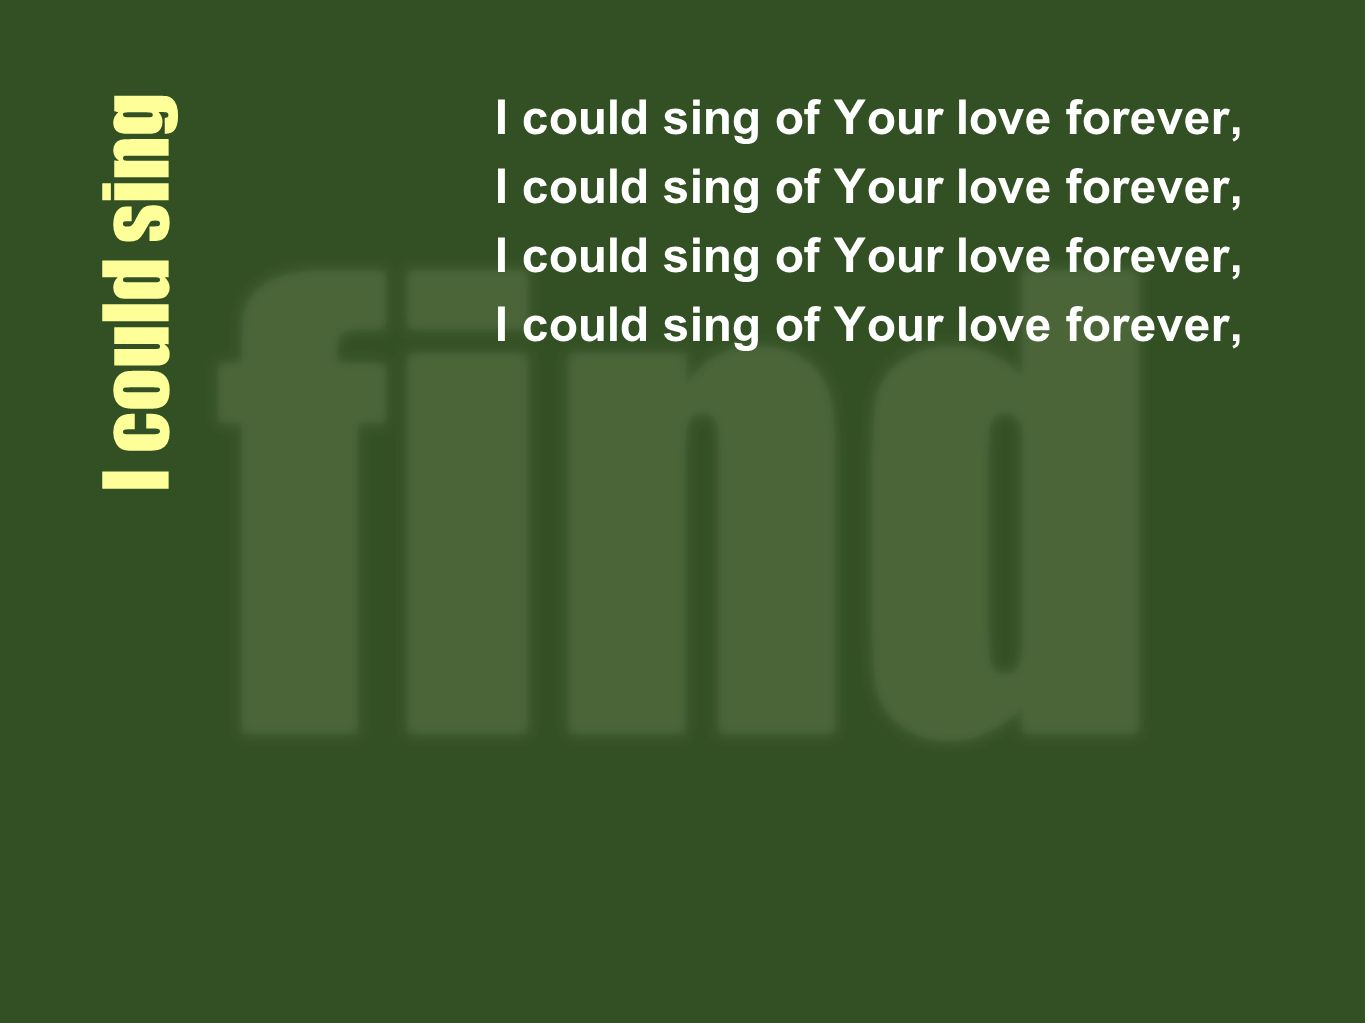 I could sing I could sing of Your love forever,